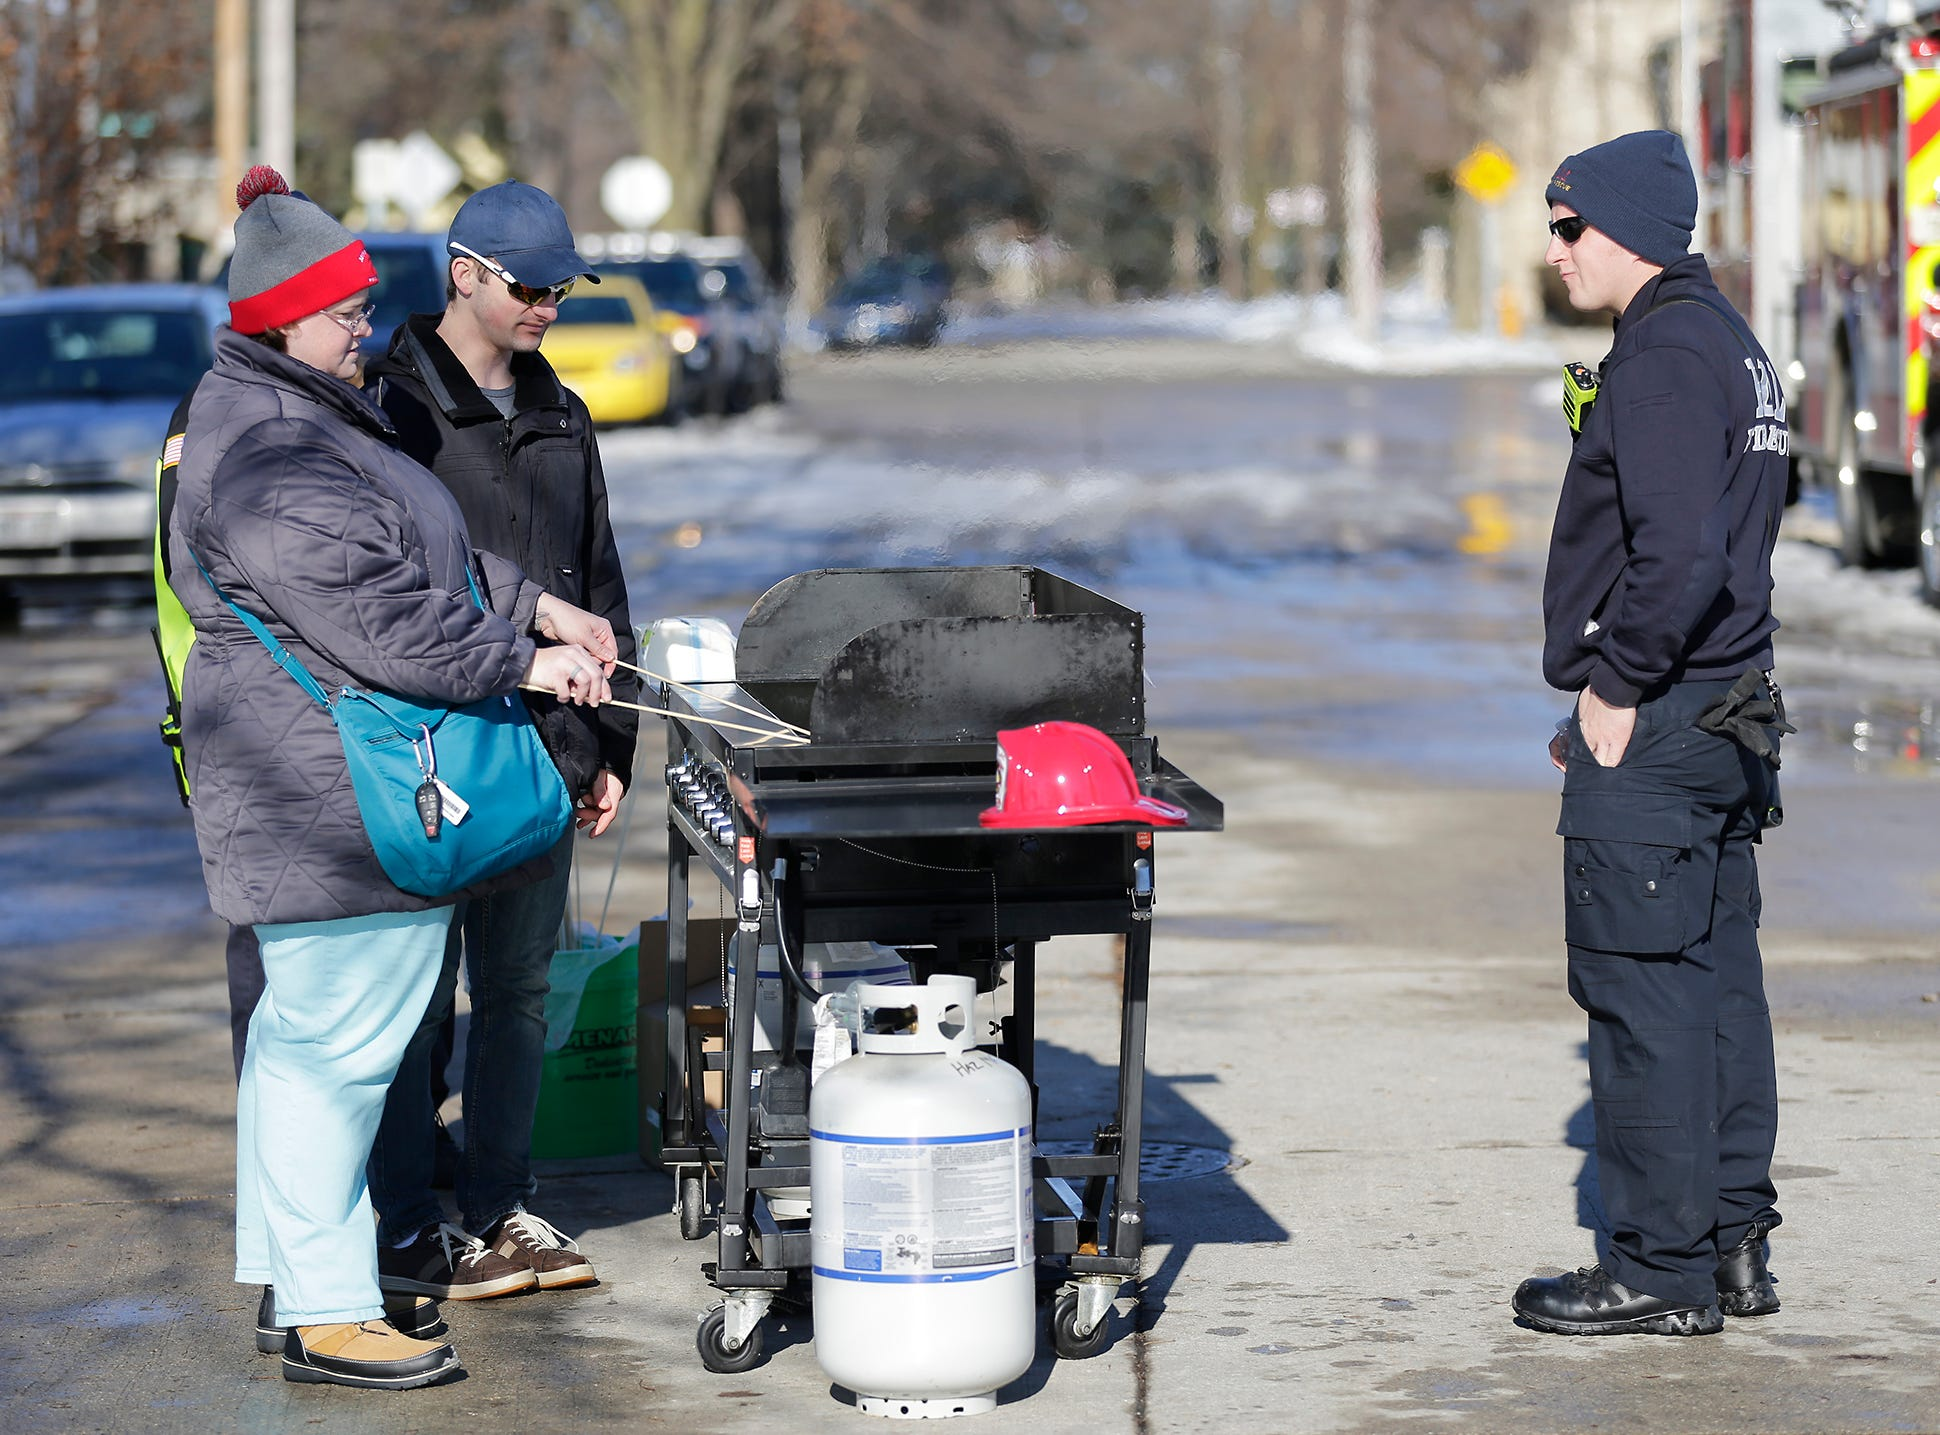 Fond du Lac Fire/Rescue members man a grill where people could roast marshmallows at Winterfest Saturday, January 5, 2019 at Hamilton park in Fond du Lac, Wisconsin. Doug Raflik/USA TODAY NETWORK-Wisconsin